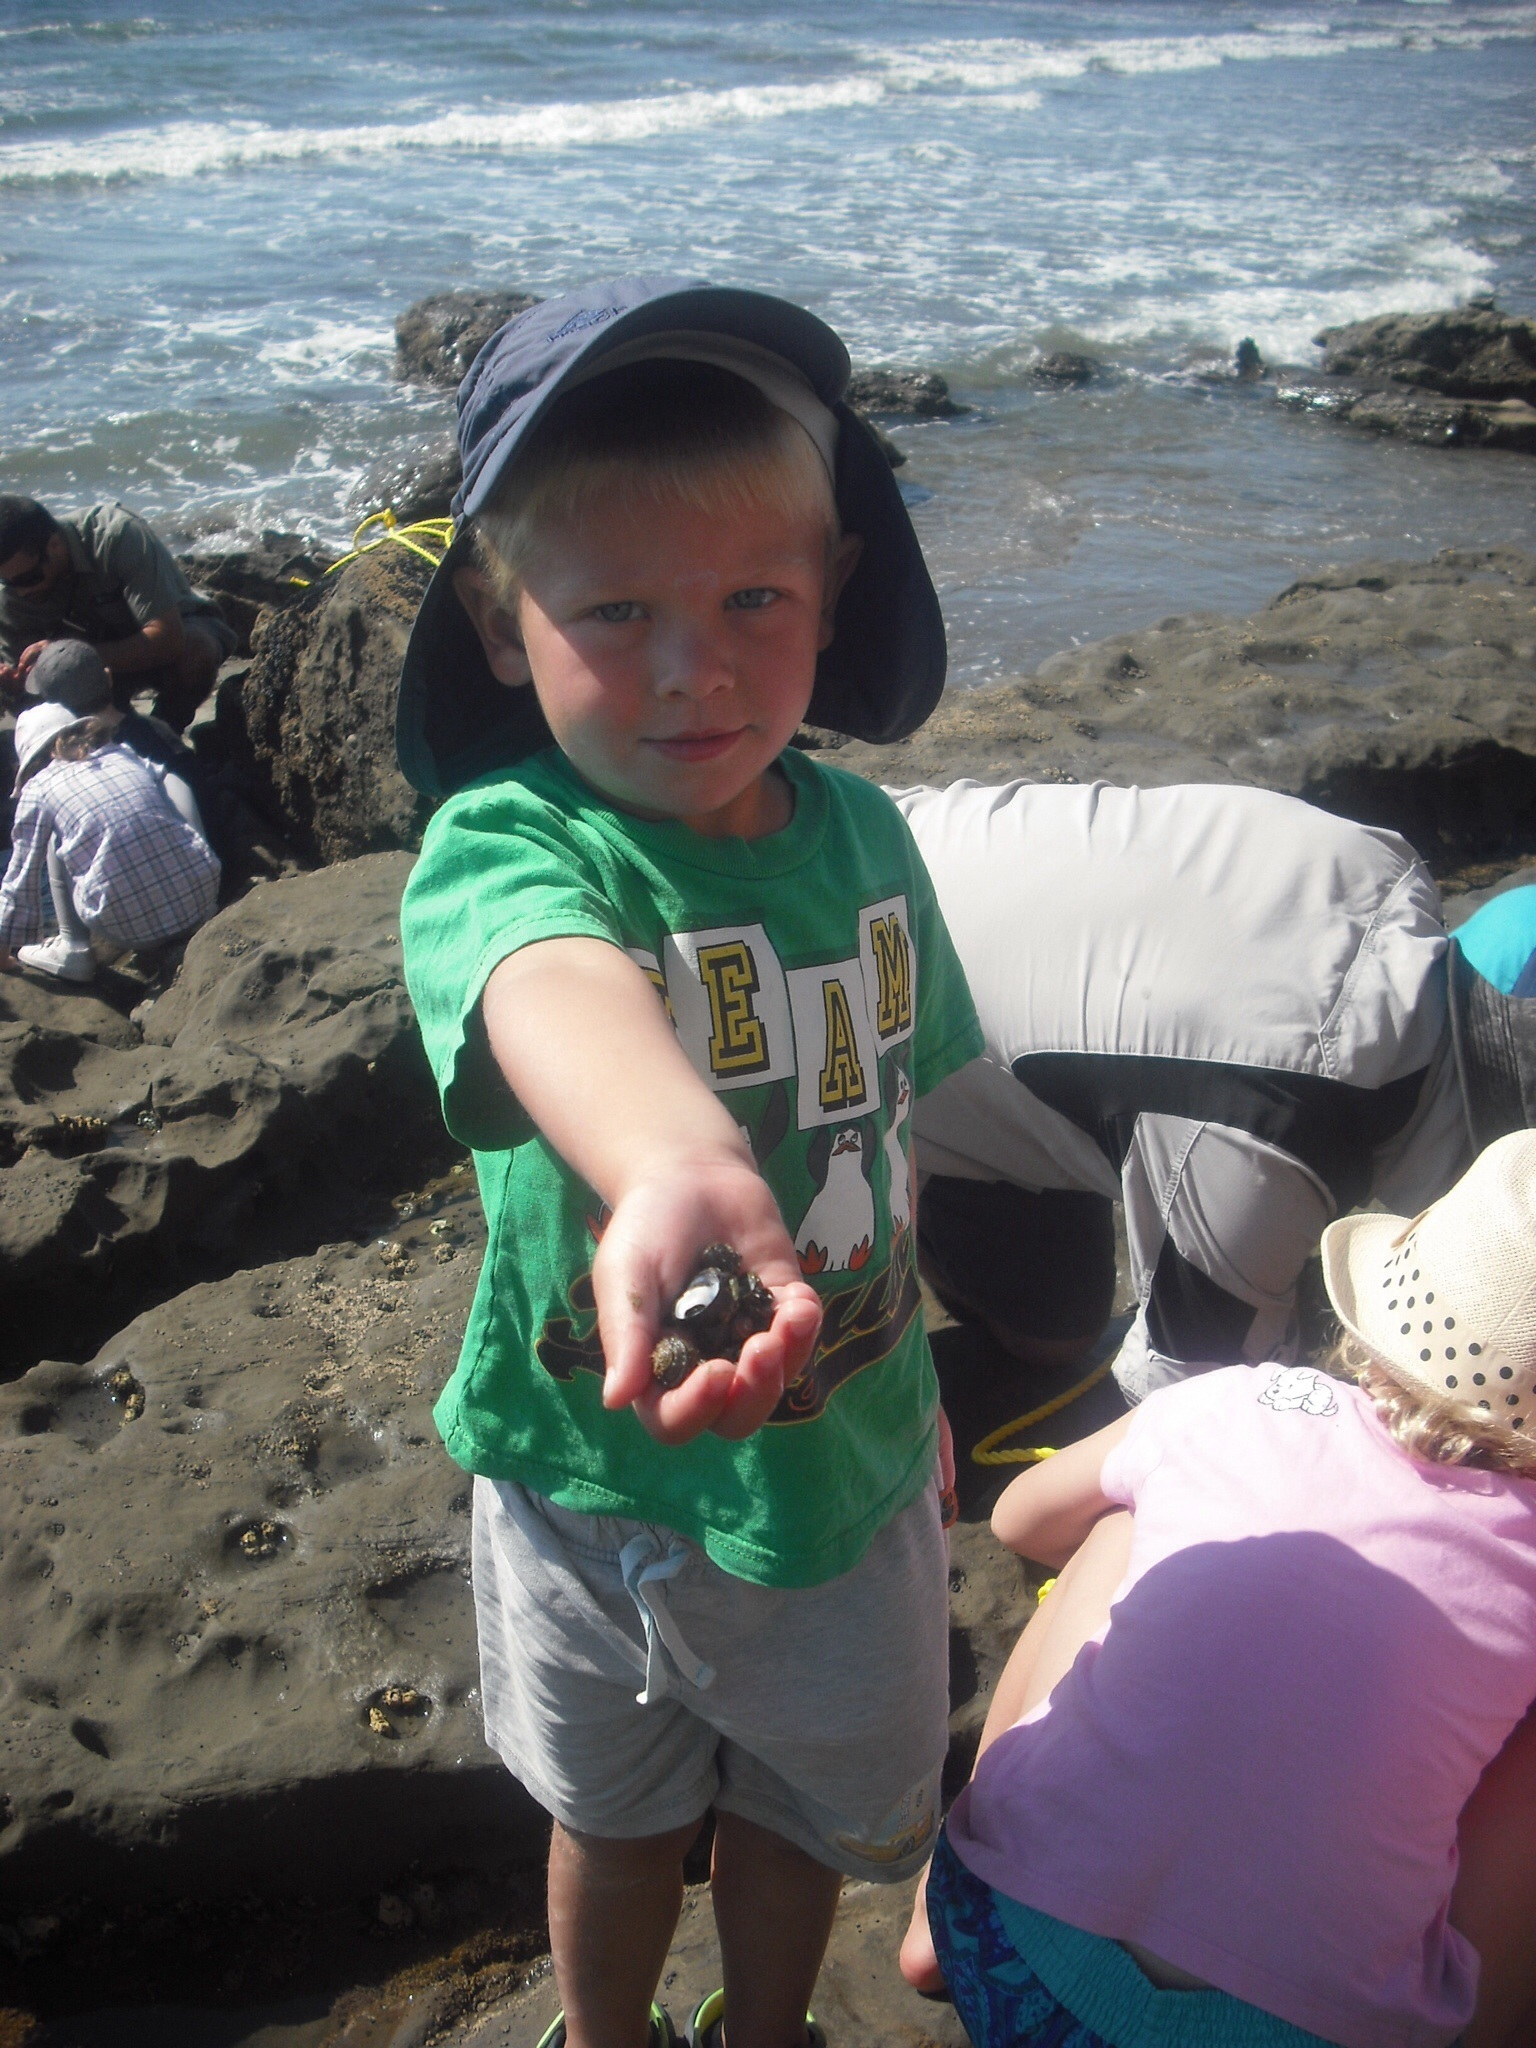 Exploring the rocky shore at Ahuriri